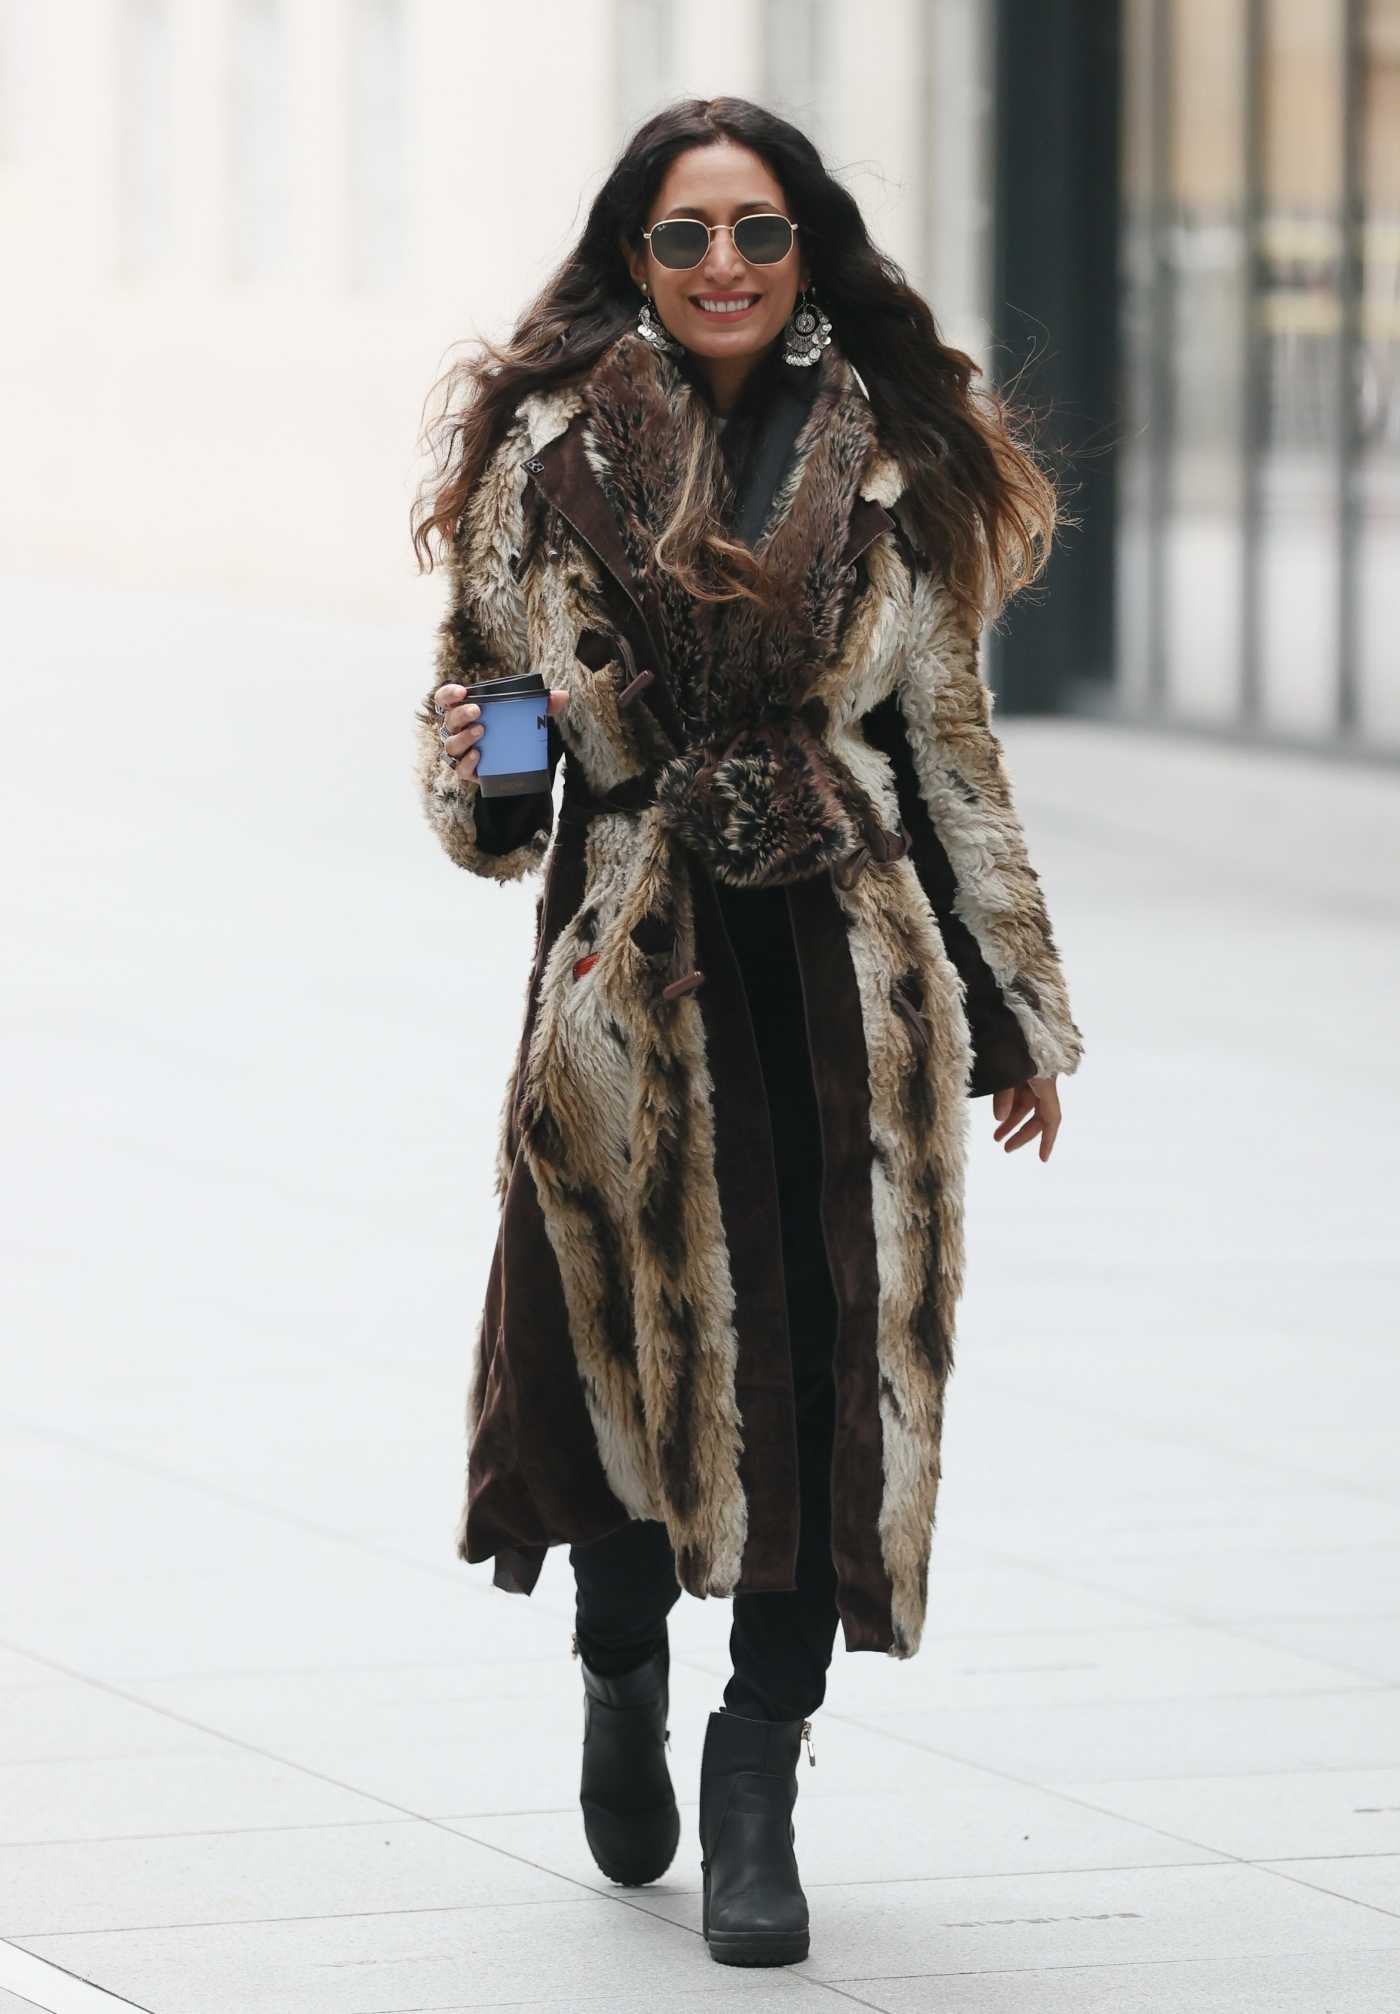 Preeya Kalidas in a Faux Fur Coat Was Spotted During the COVID-19 Lockdown in London 02/06/2021